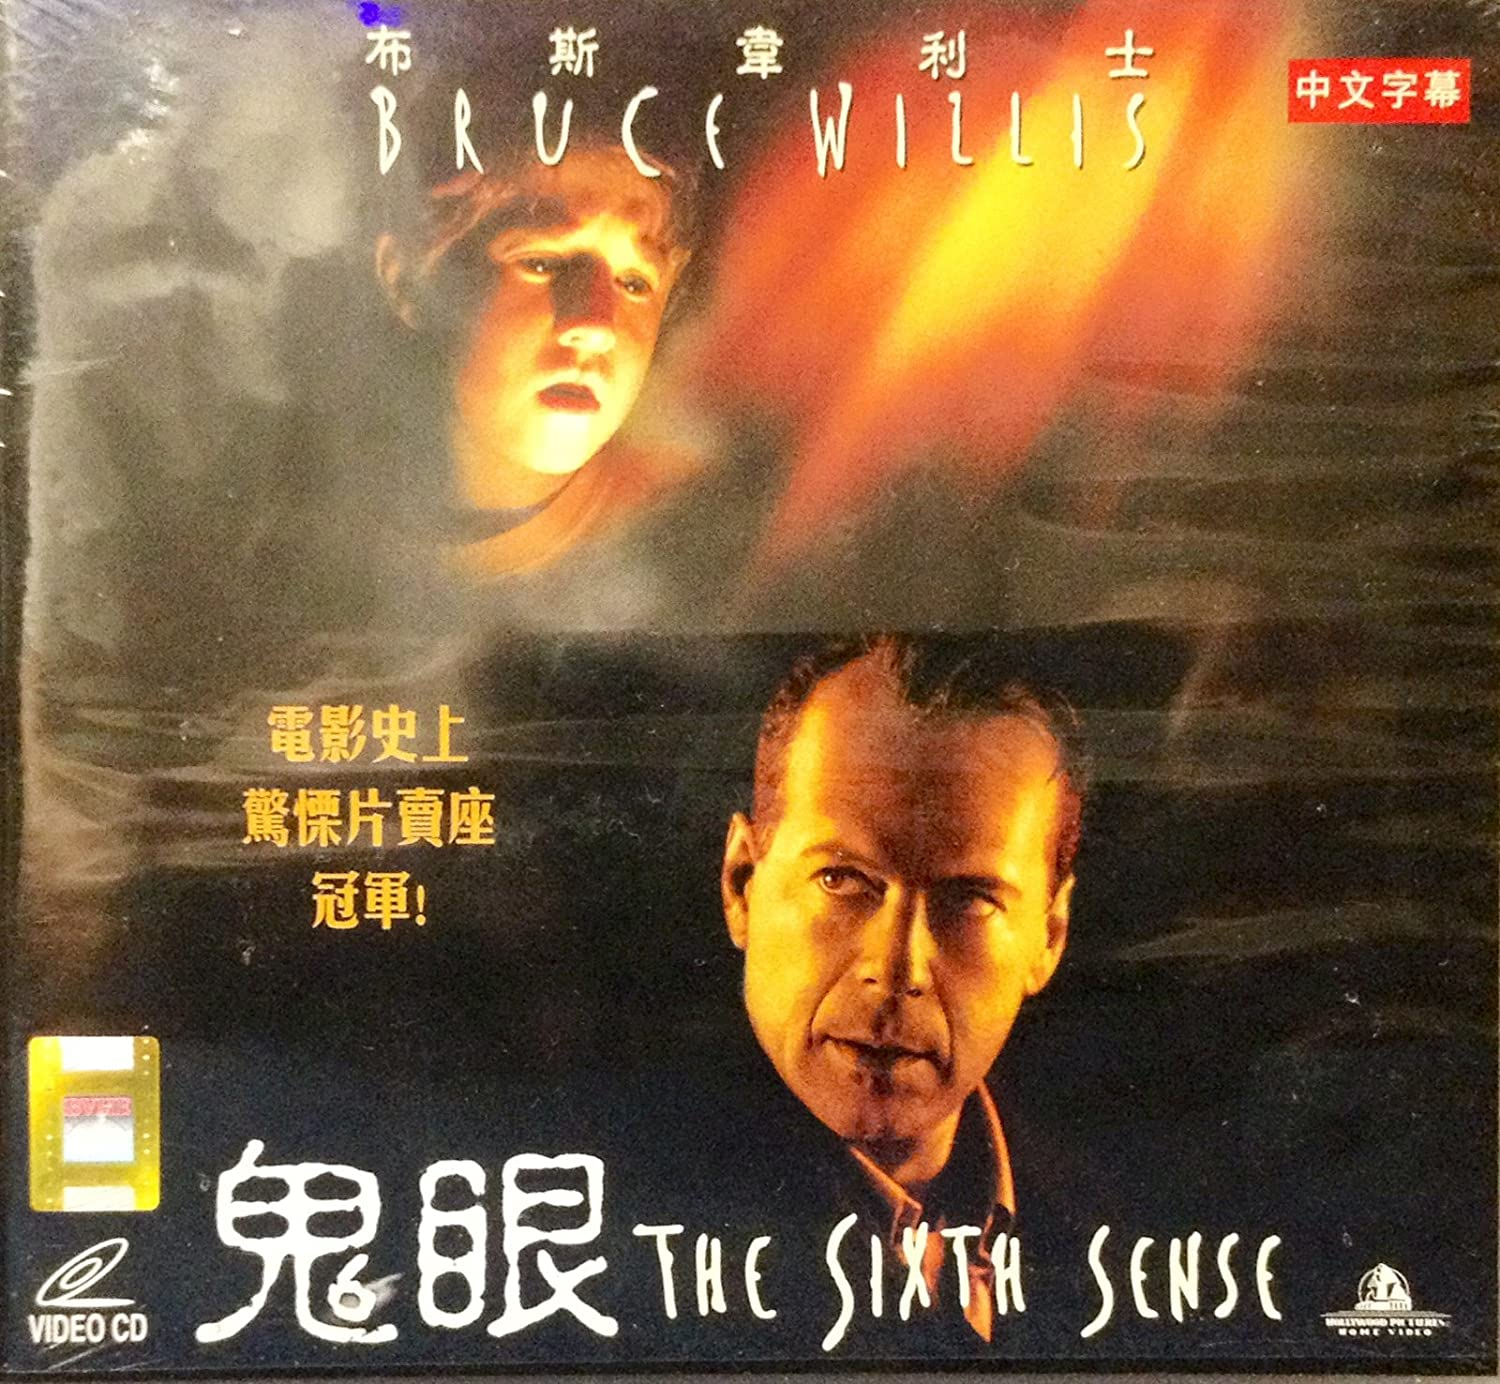 Amazon Com The Sixth Sense 1999 By Ivl Version Vcd In English W Chinese Subtitles Imported From Hong Kong Bruce Willis Haley Joel Osment Toni Collette M Night Shyamalan Movies Tv